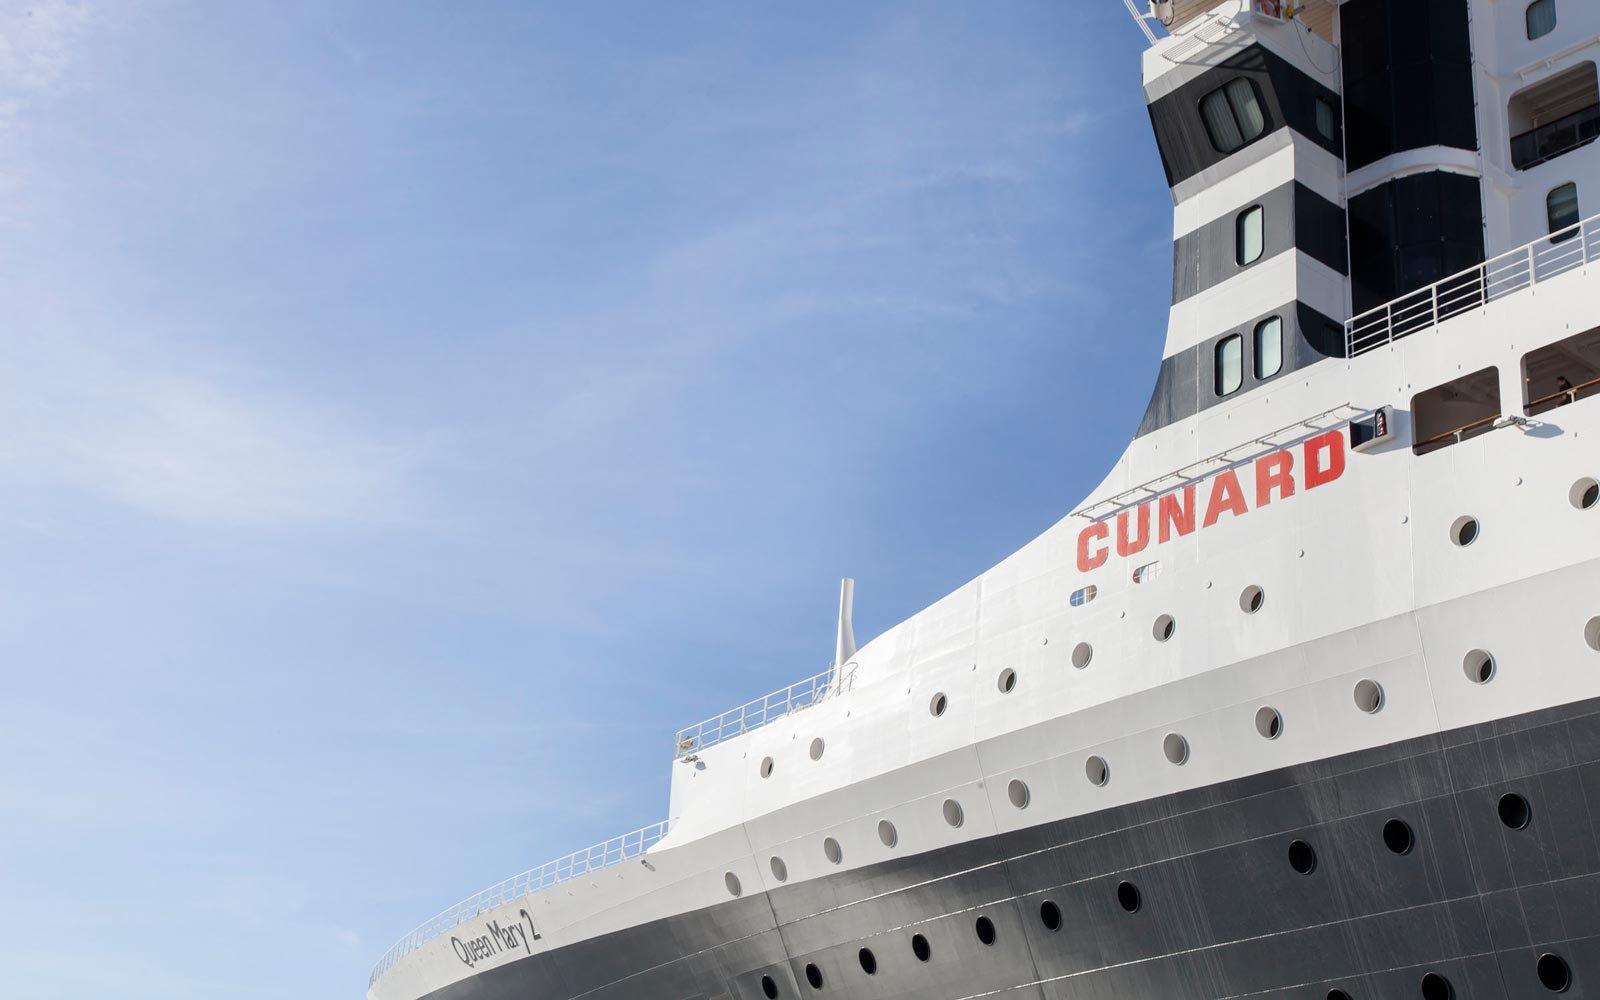 cunard-queen-mary-header-QM20117.jpg